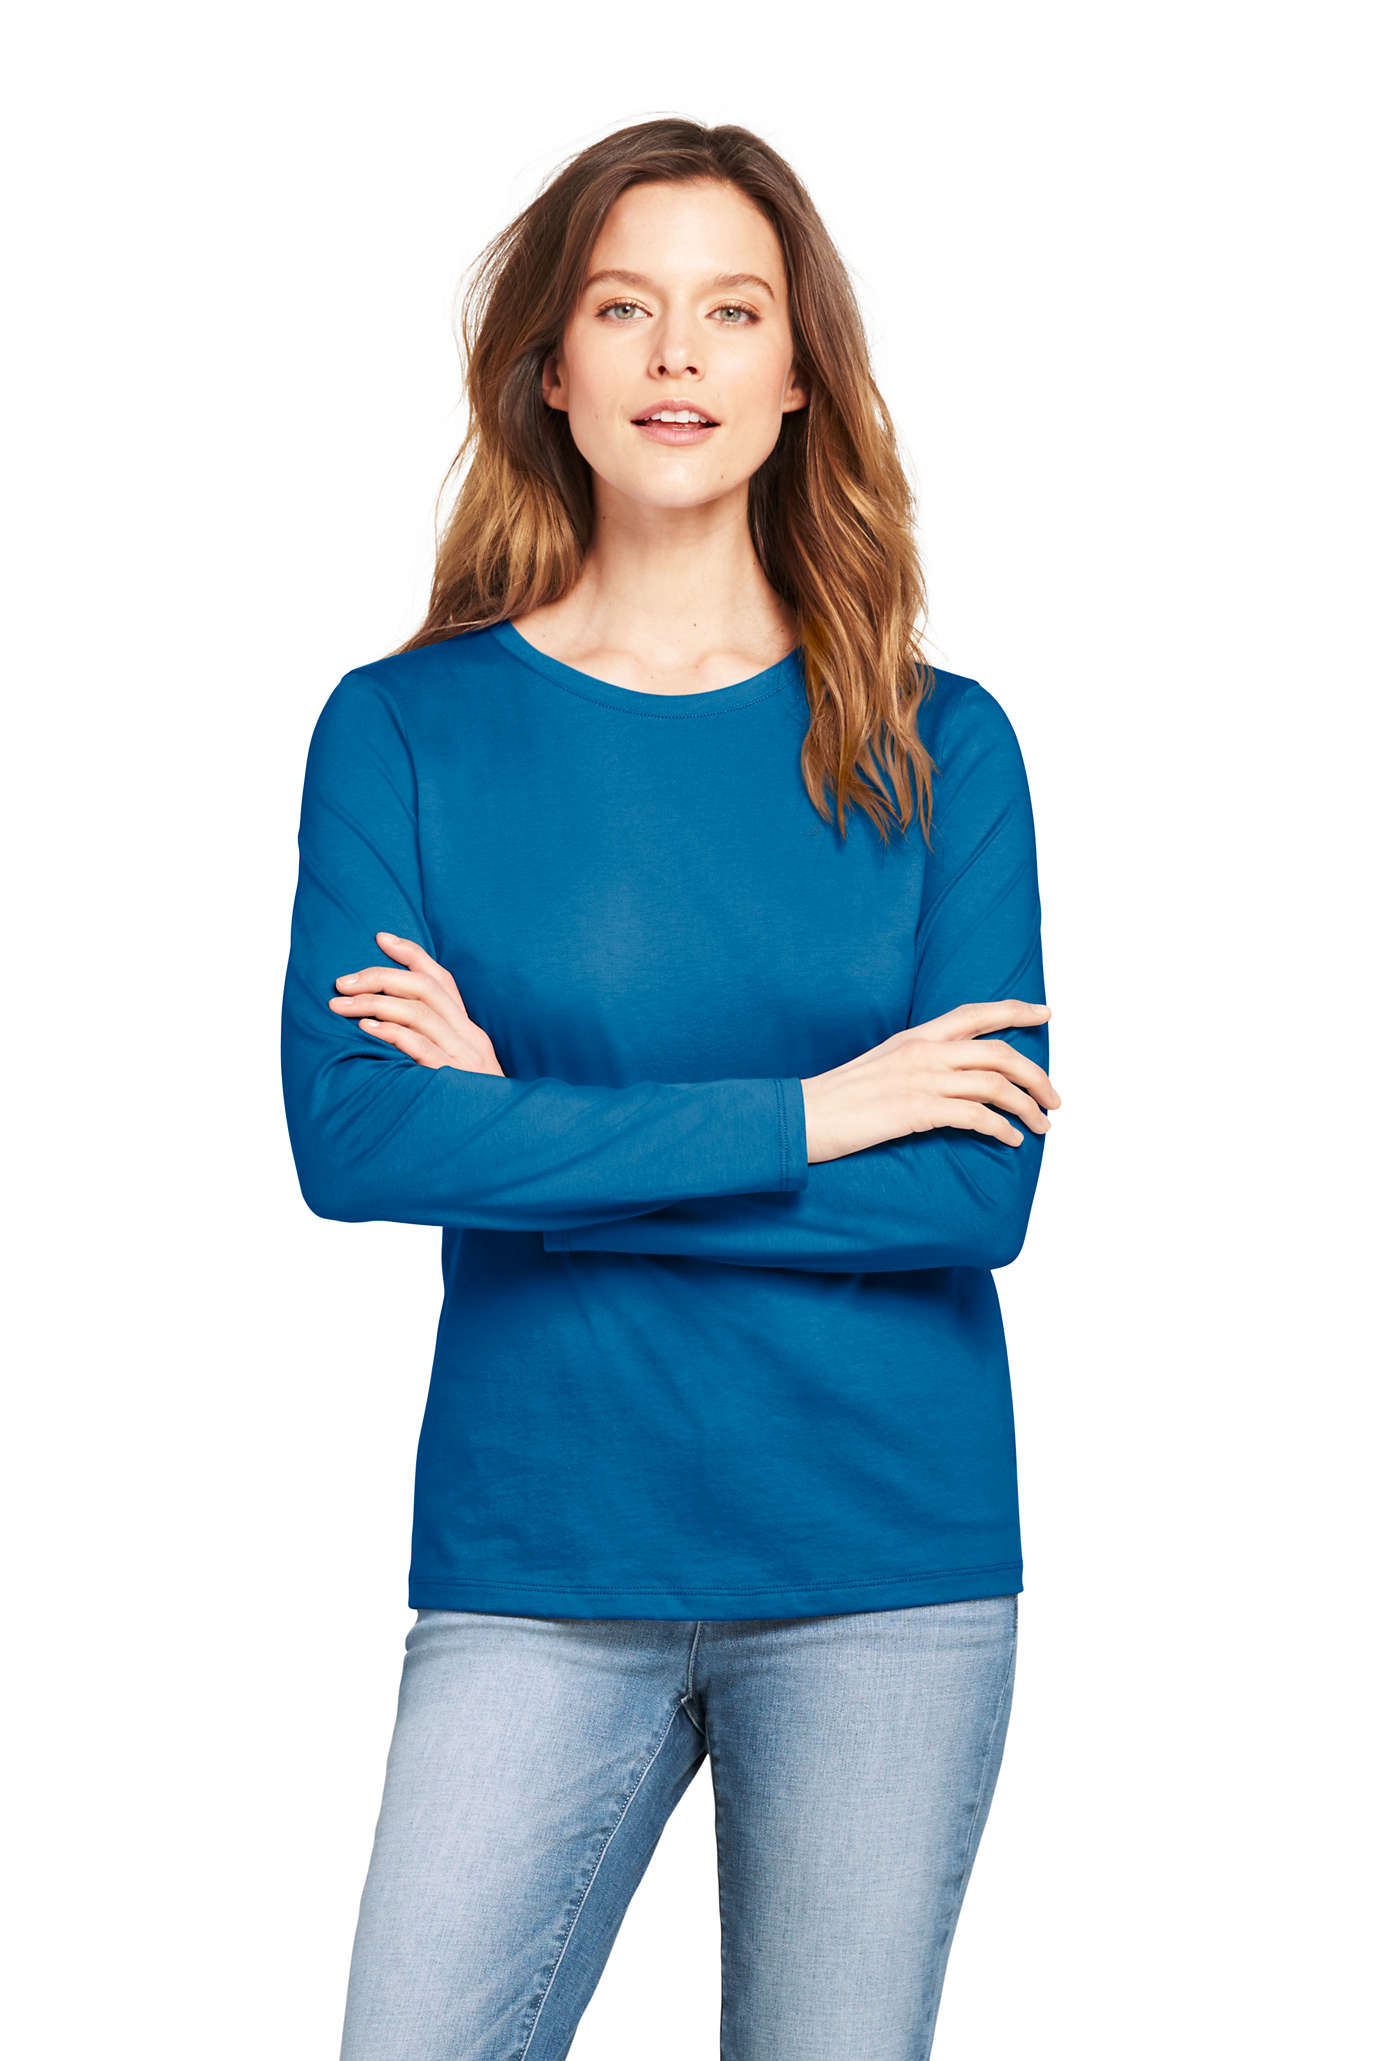 49acdae4 Women's Tops & Tees | Lands' End